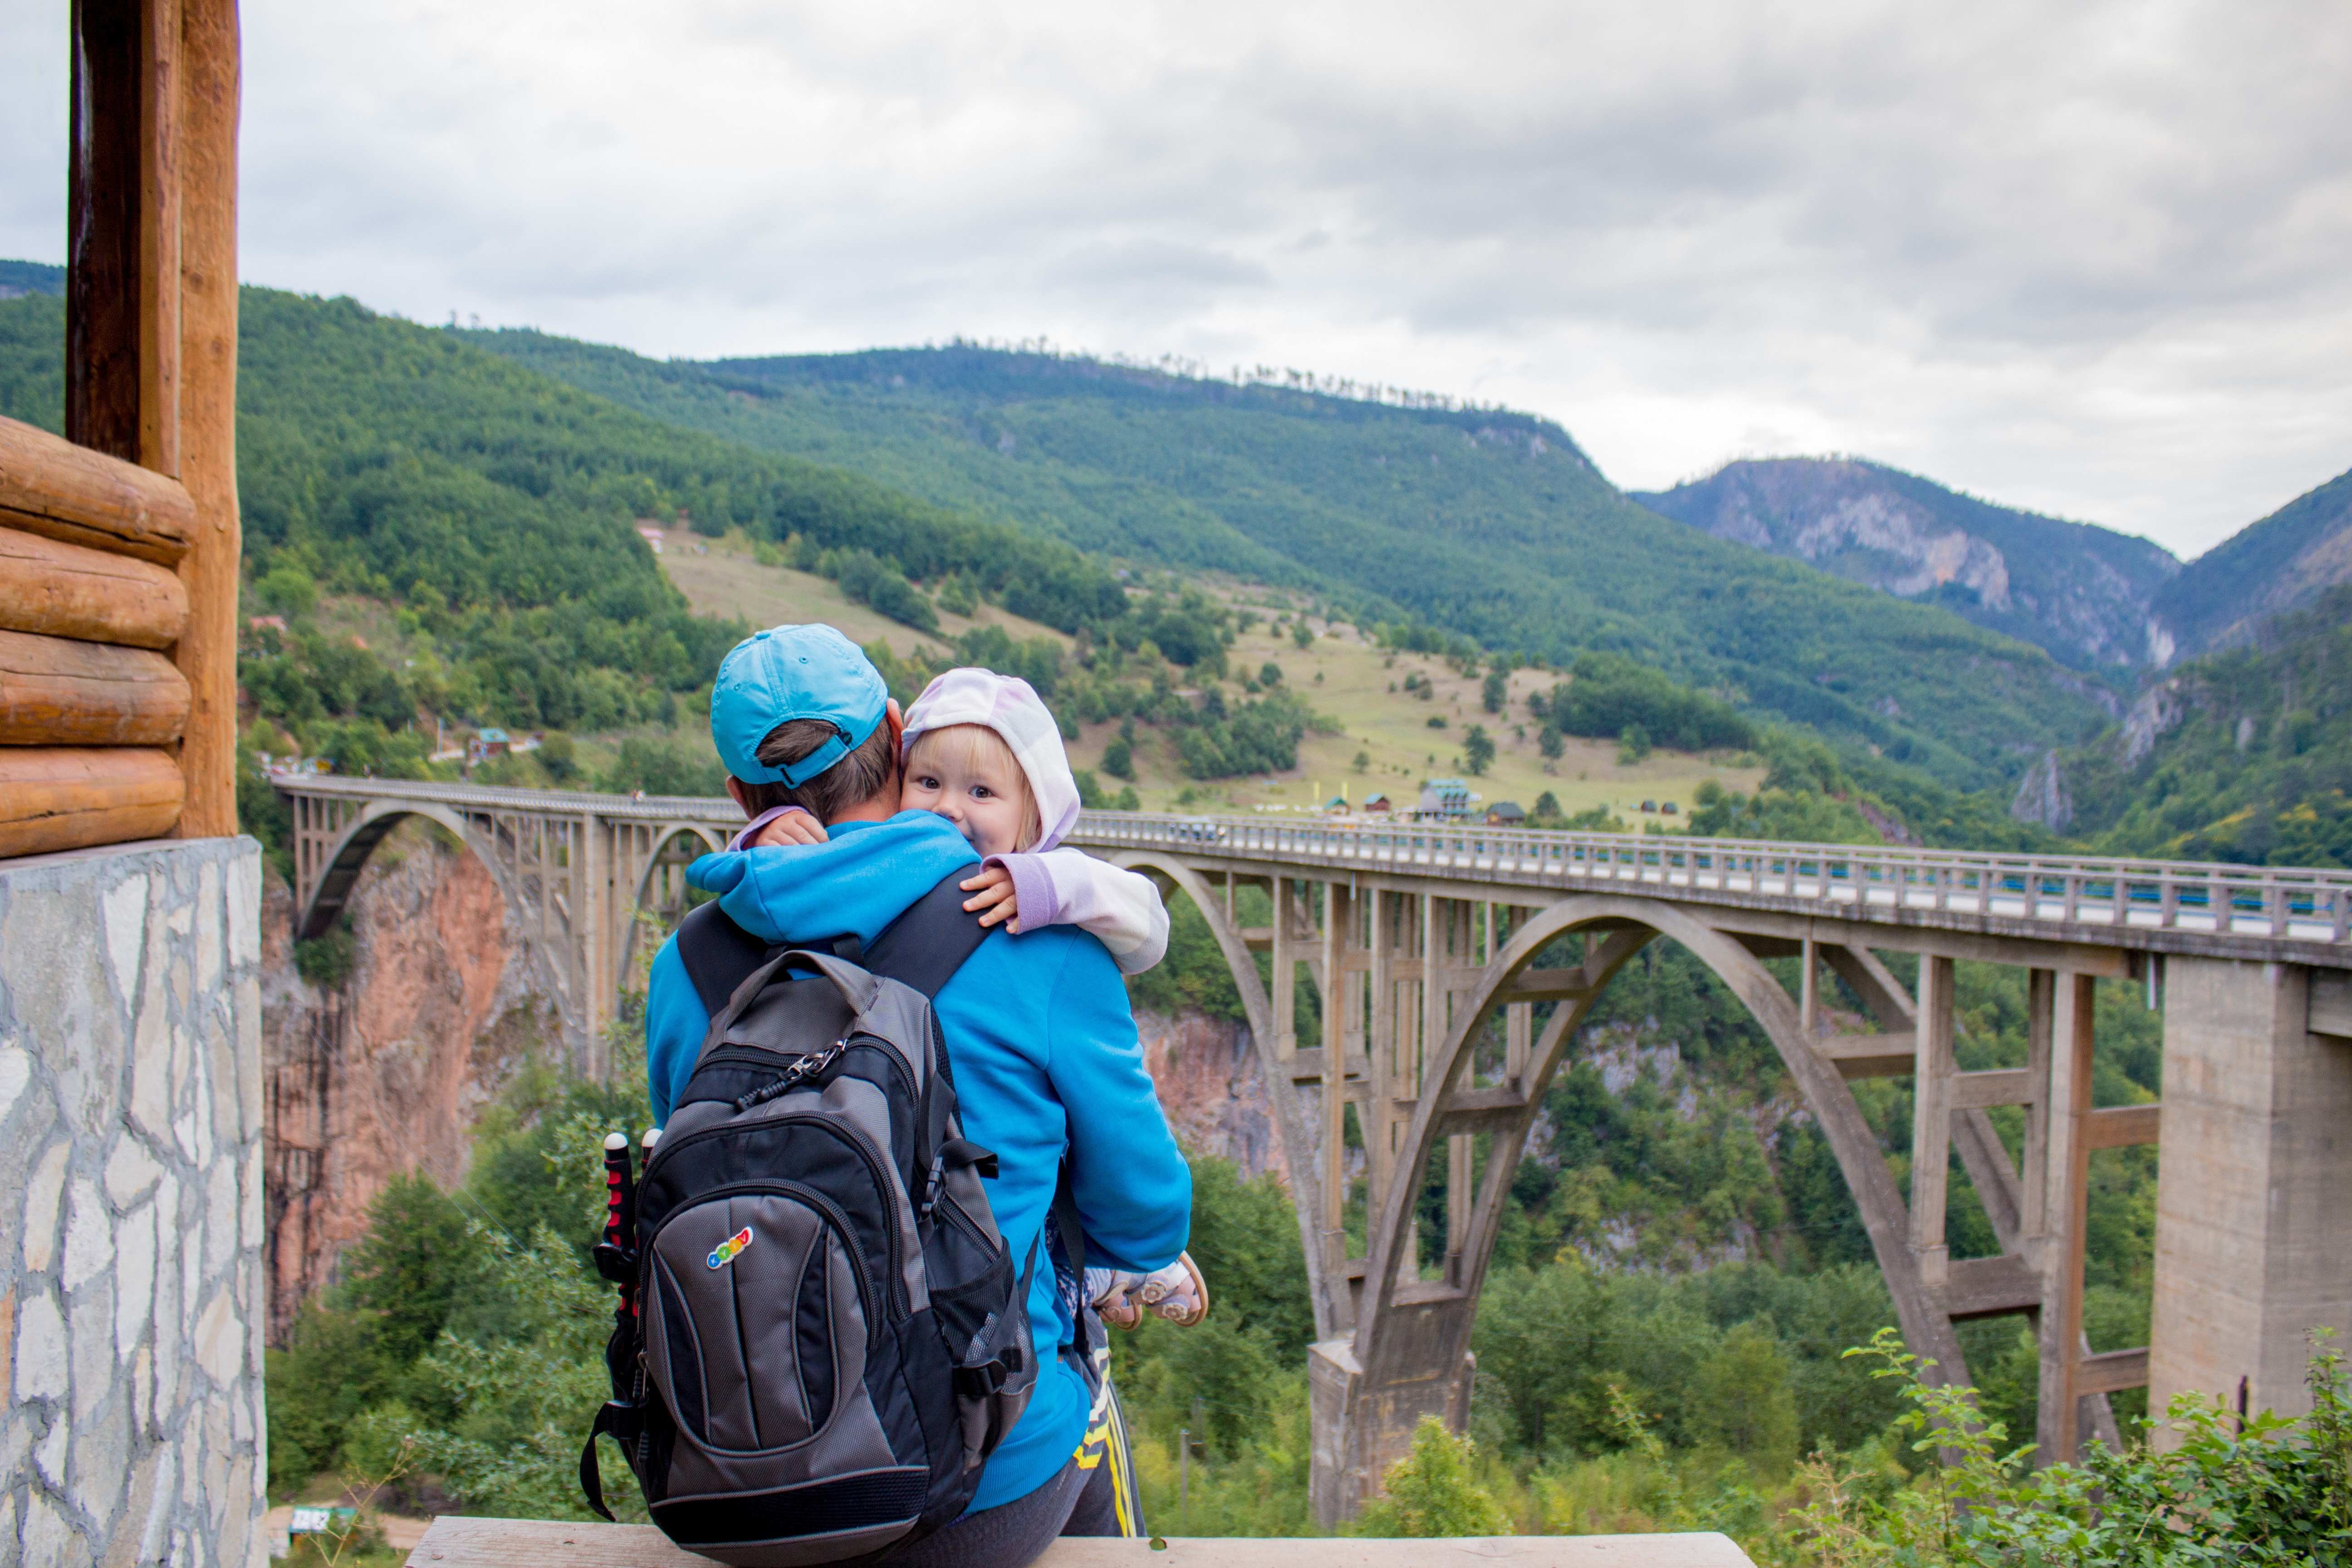 dad carrying child, looking at a bridge and his carry on bag